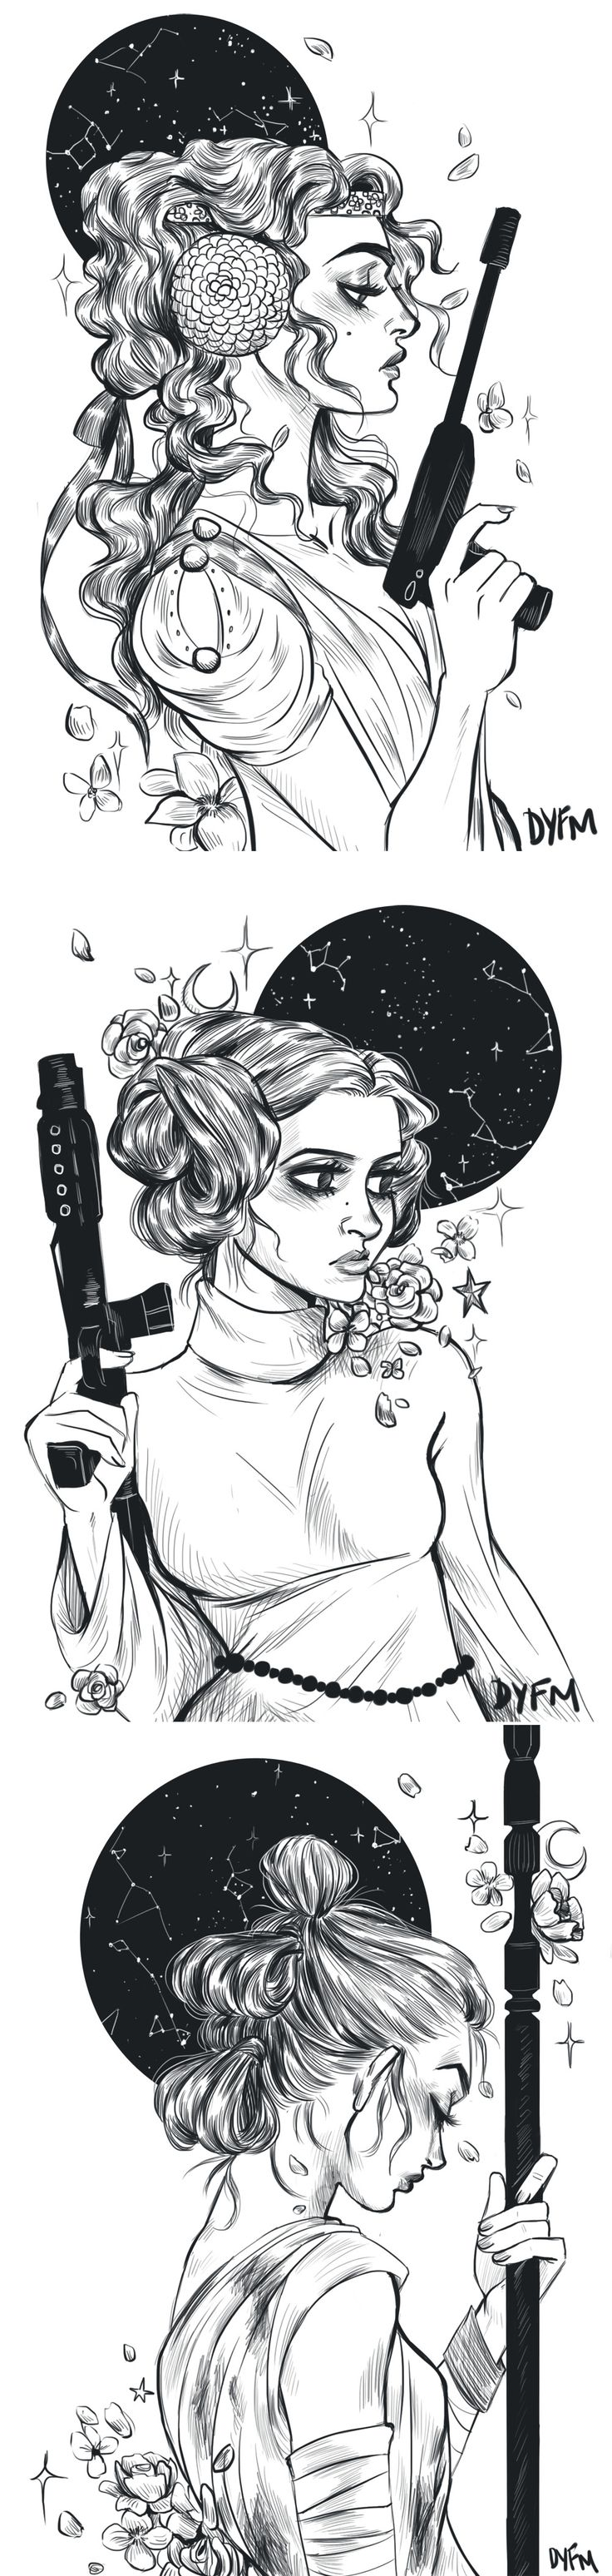 support your local space ladies #starwars